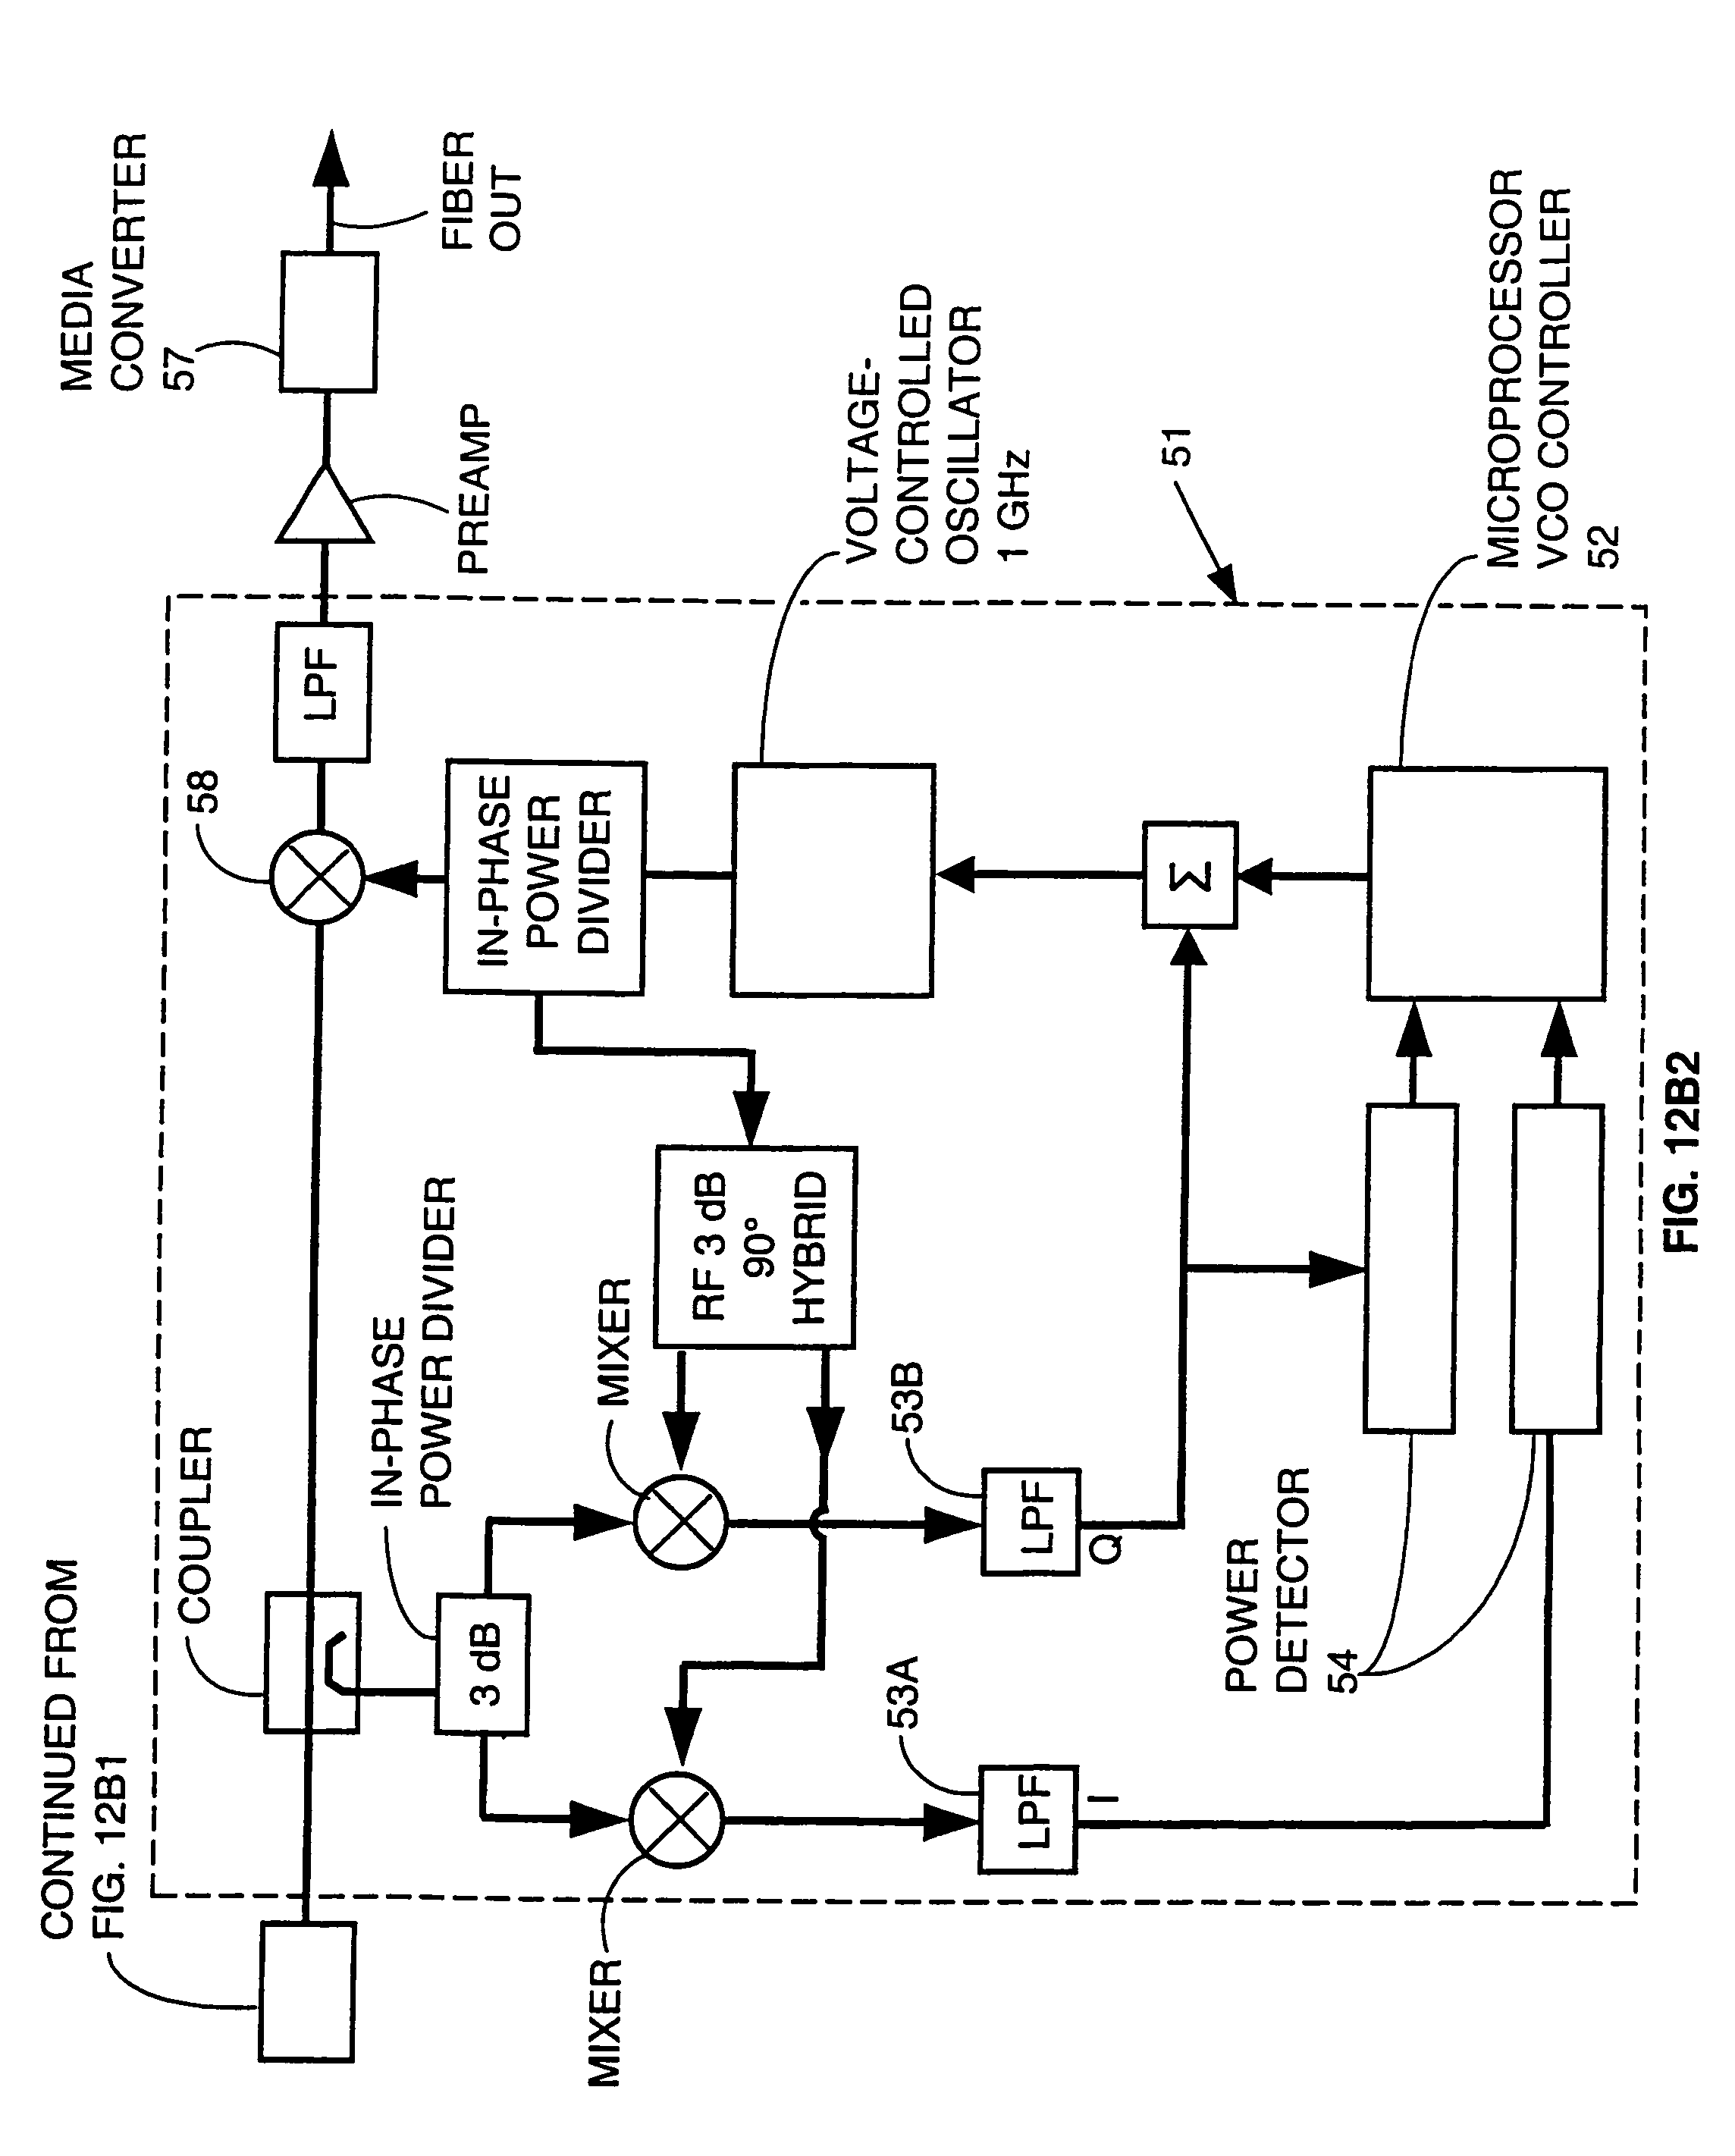 Wiring Diagram For International 656 Powerking